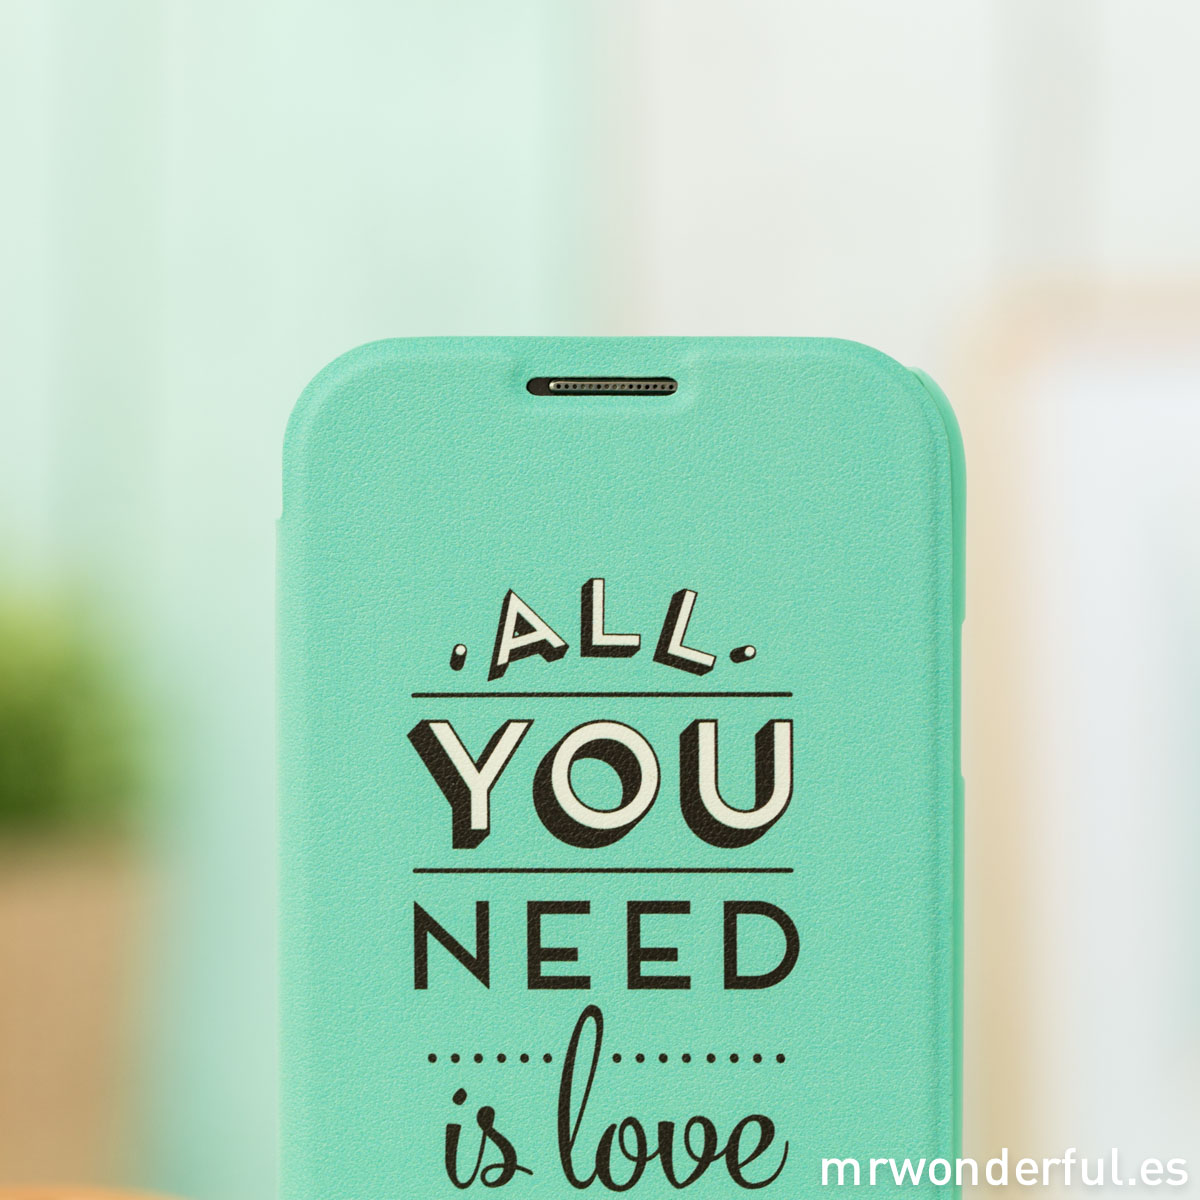 mrwonderful_MRFOL002_funda-mint-samsung-galaxy-S4_all-you-need-love-wifi-13